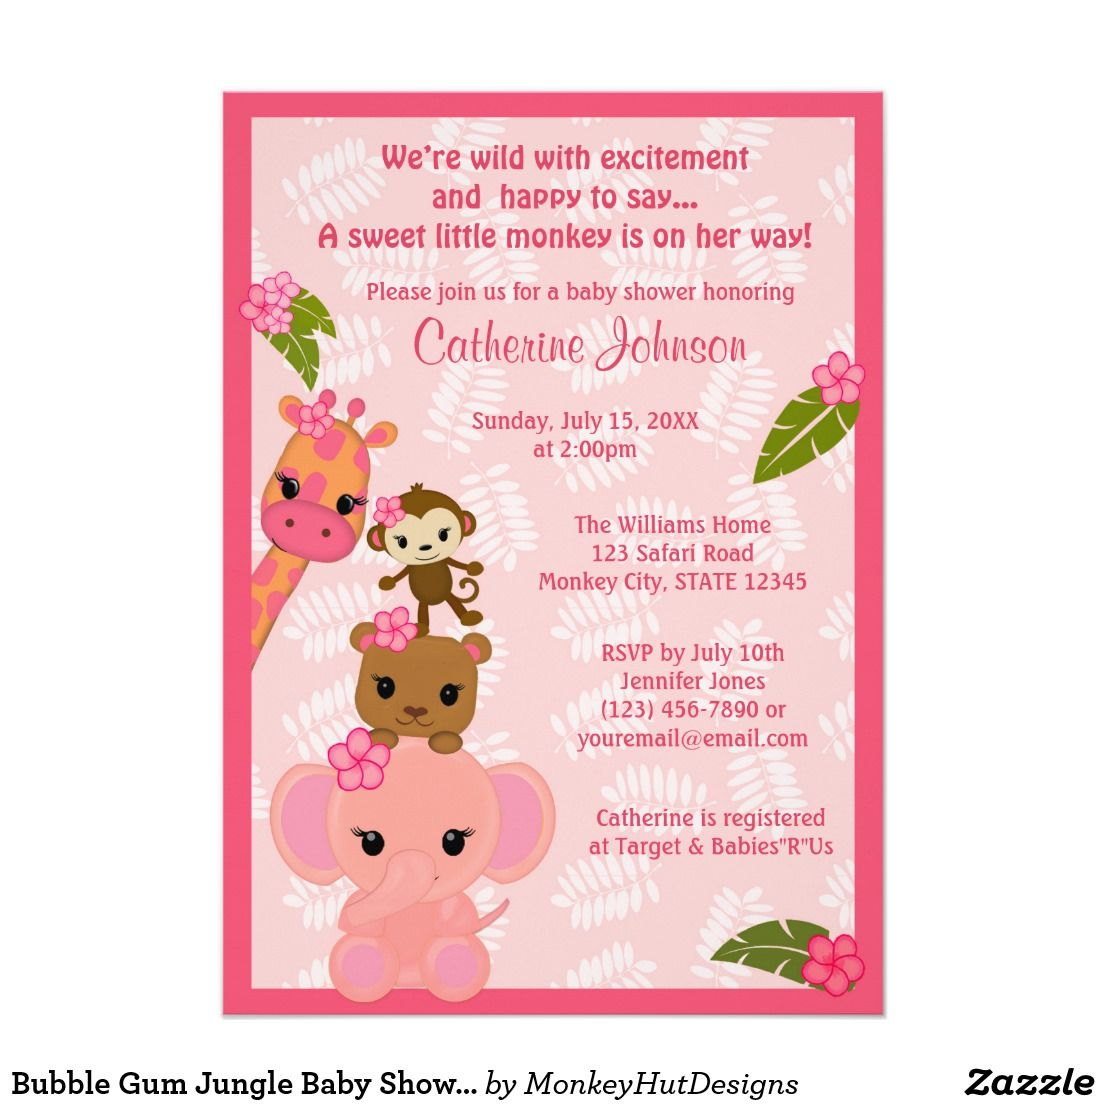 Bubble Gum Jungle Baby Shower Invitations GIRL | Fun baby, Shower ...